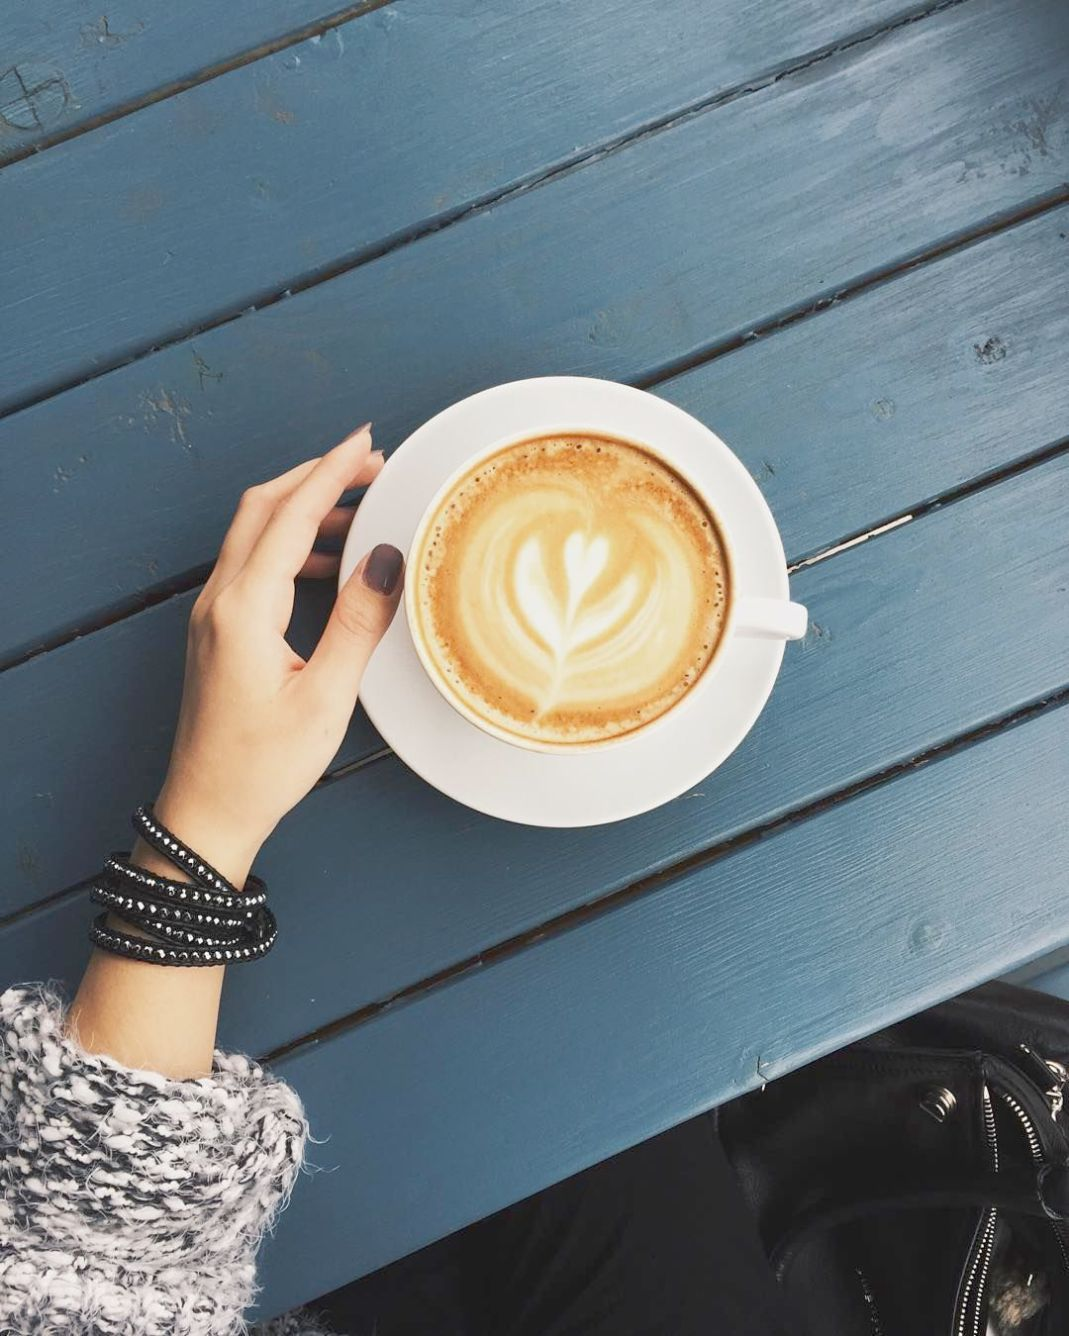 Pin By Ftme Arb On Coffee Coffee Shop Photography Coffee Love Latte